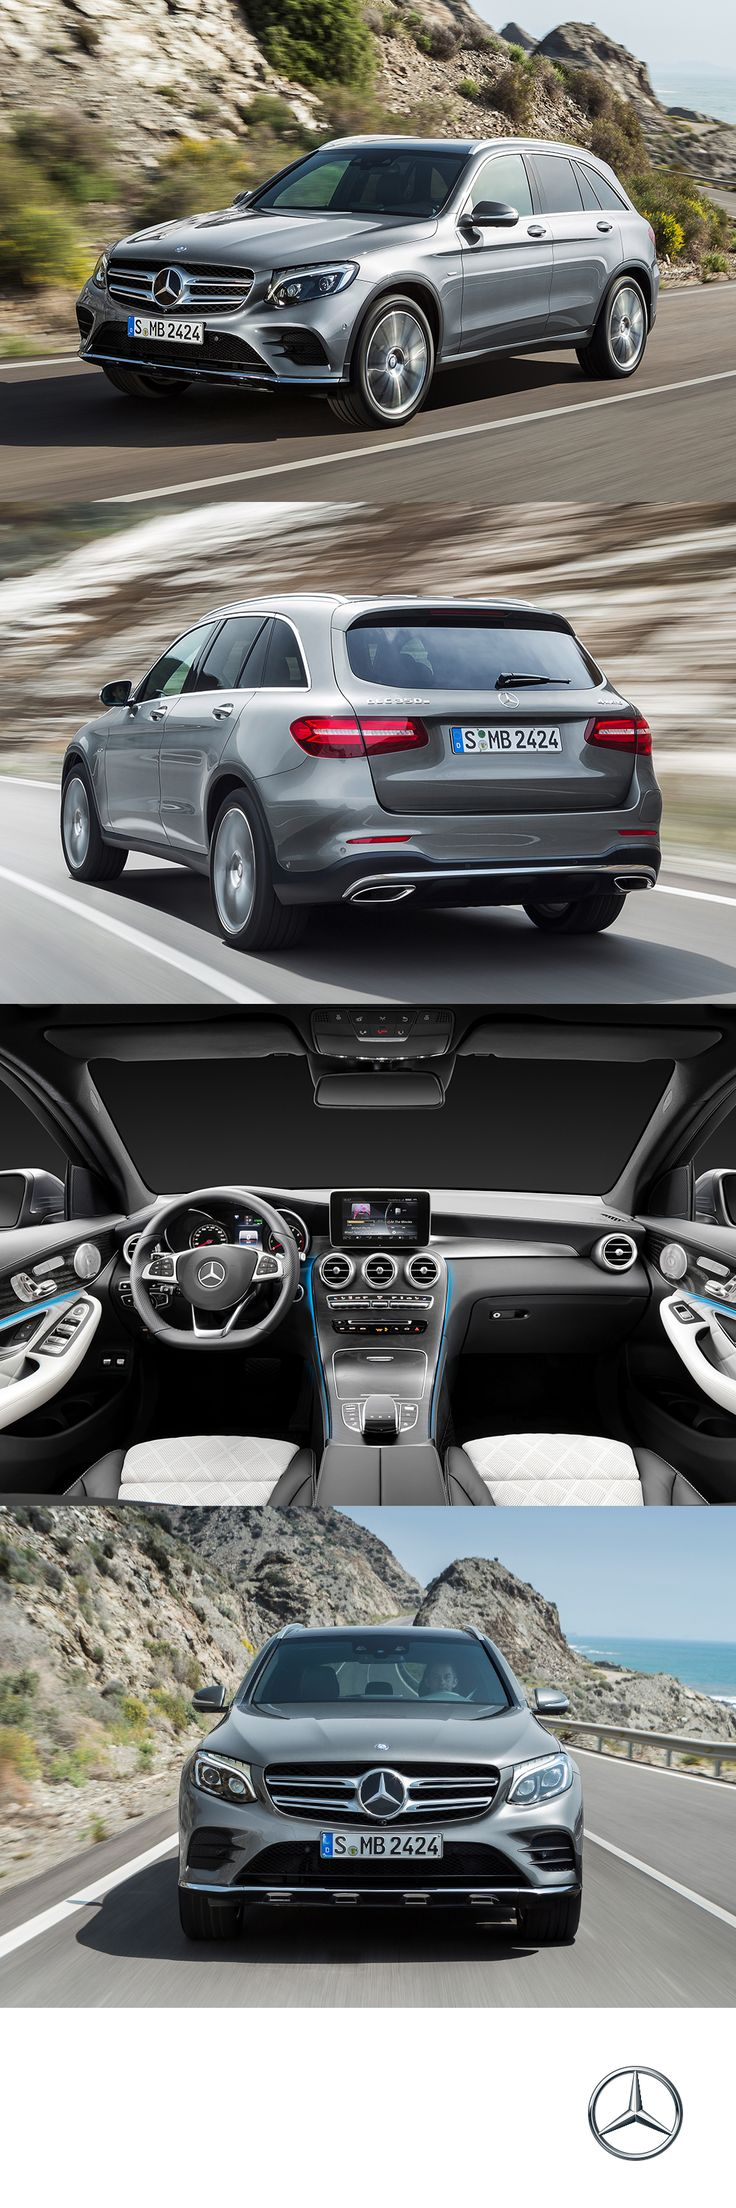 The all-new GLC makes its mark with peerless technology, outstanding energy efficiency and a sensual design. And with 367-hp direct-injection biturbo V6 engine, it has the athleticism to take on the c